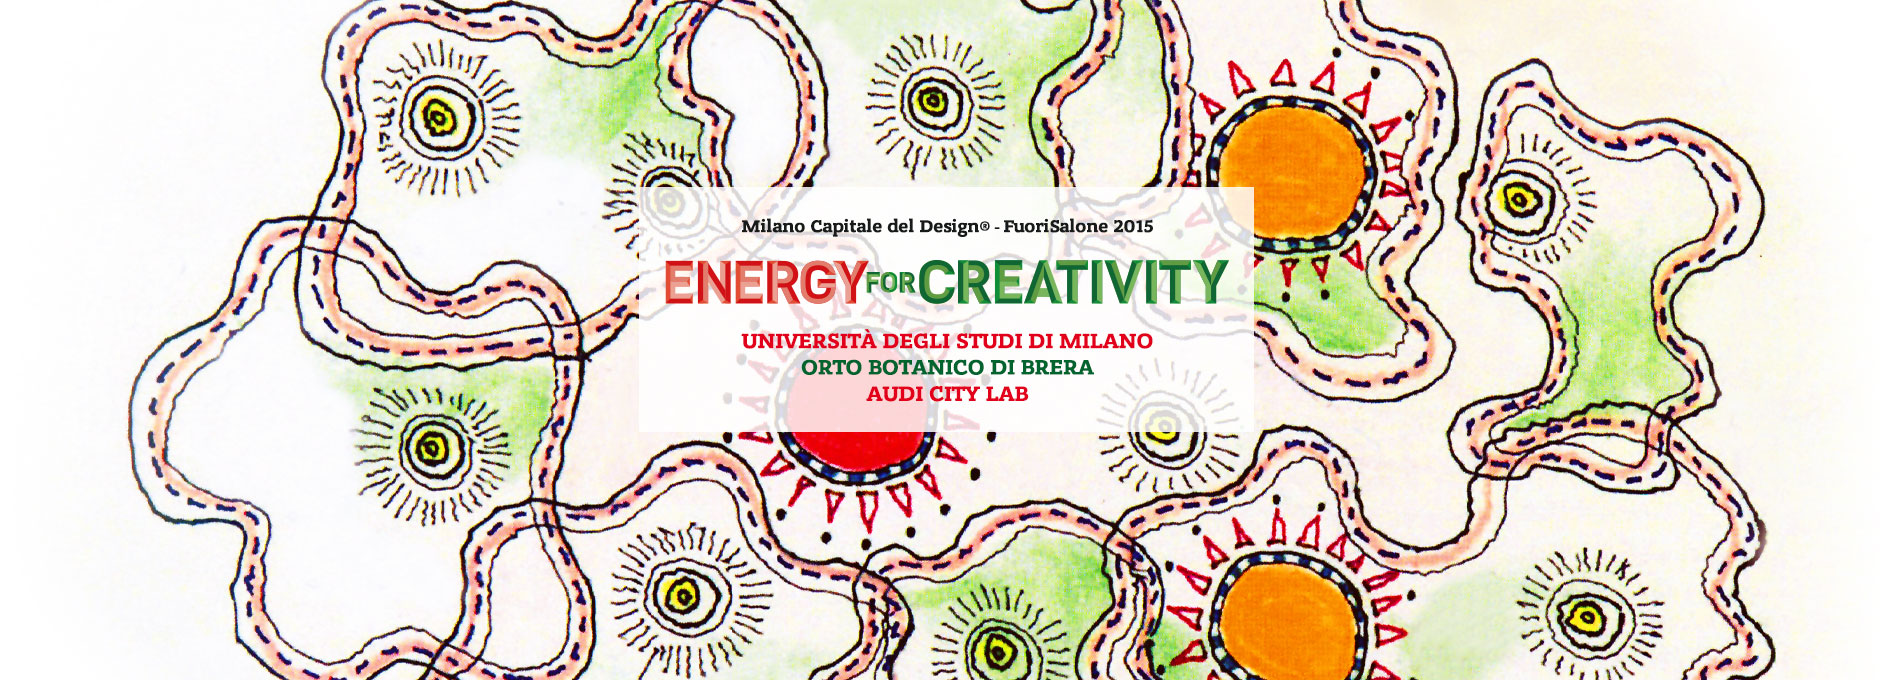 FuoriSalone 2015  ENERGY FOR CREATIVITY an event by INTERNI